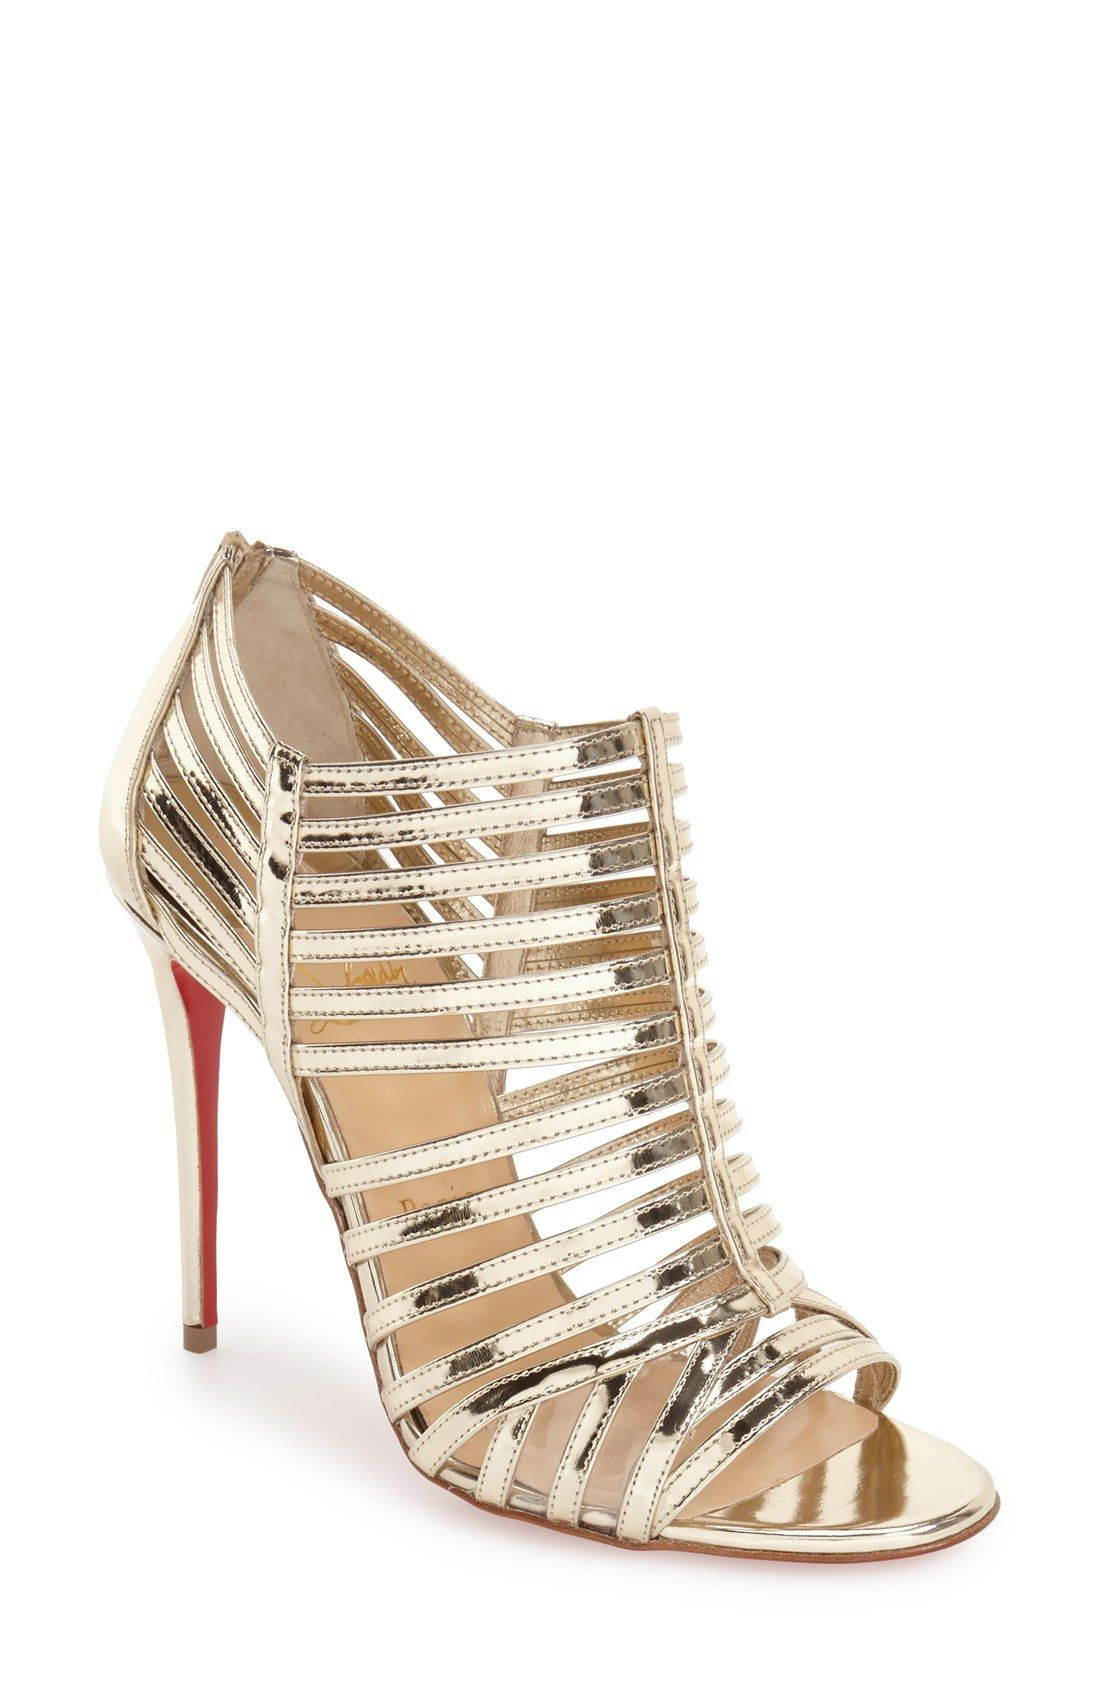 dab766988a02 Free shipping and returns on Christian Louboutin  City Jolly  Cage Sandal  at Nordstrom.com. Pre-order this style today! Add to Shopping Bag to view  ...